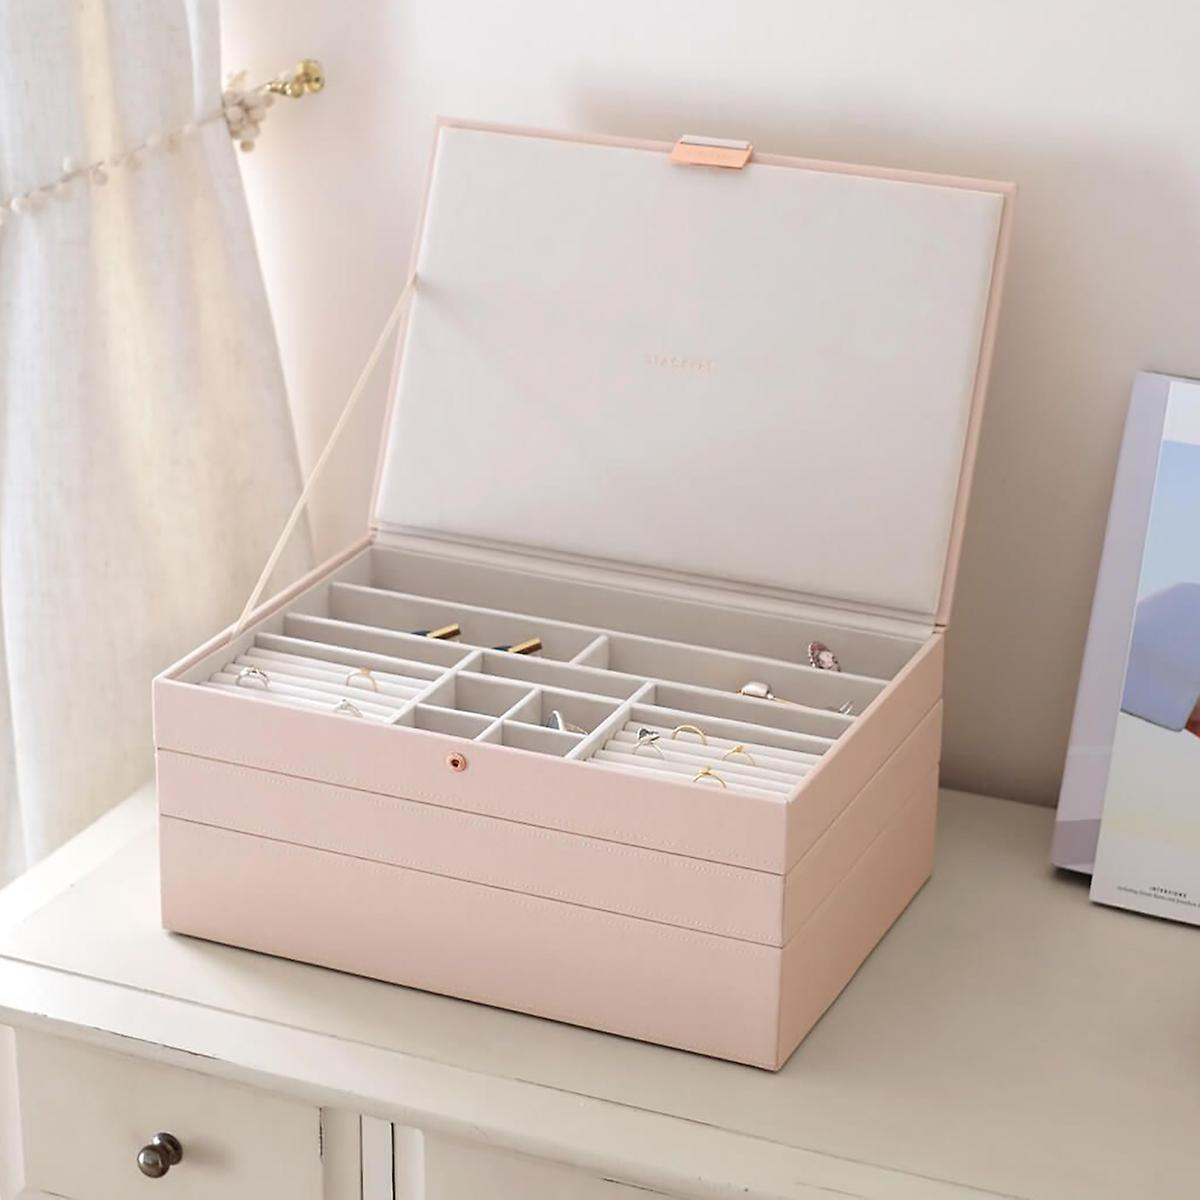 Stackers Blush Supersize Premium Stackable Jewelry Box by Container Store